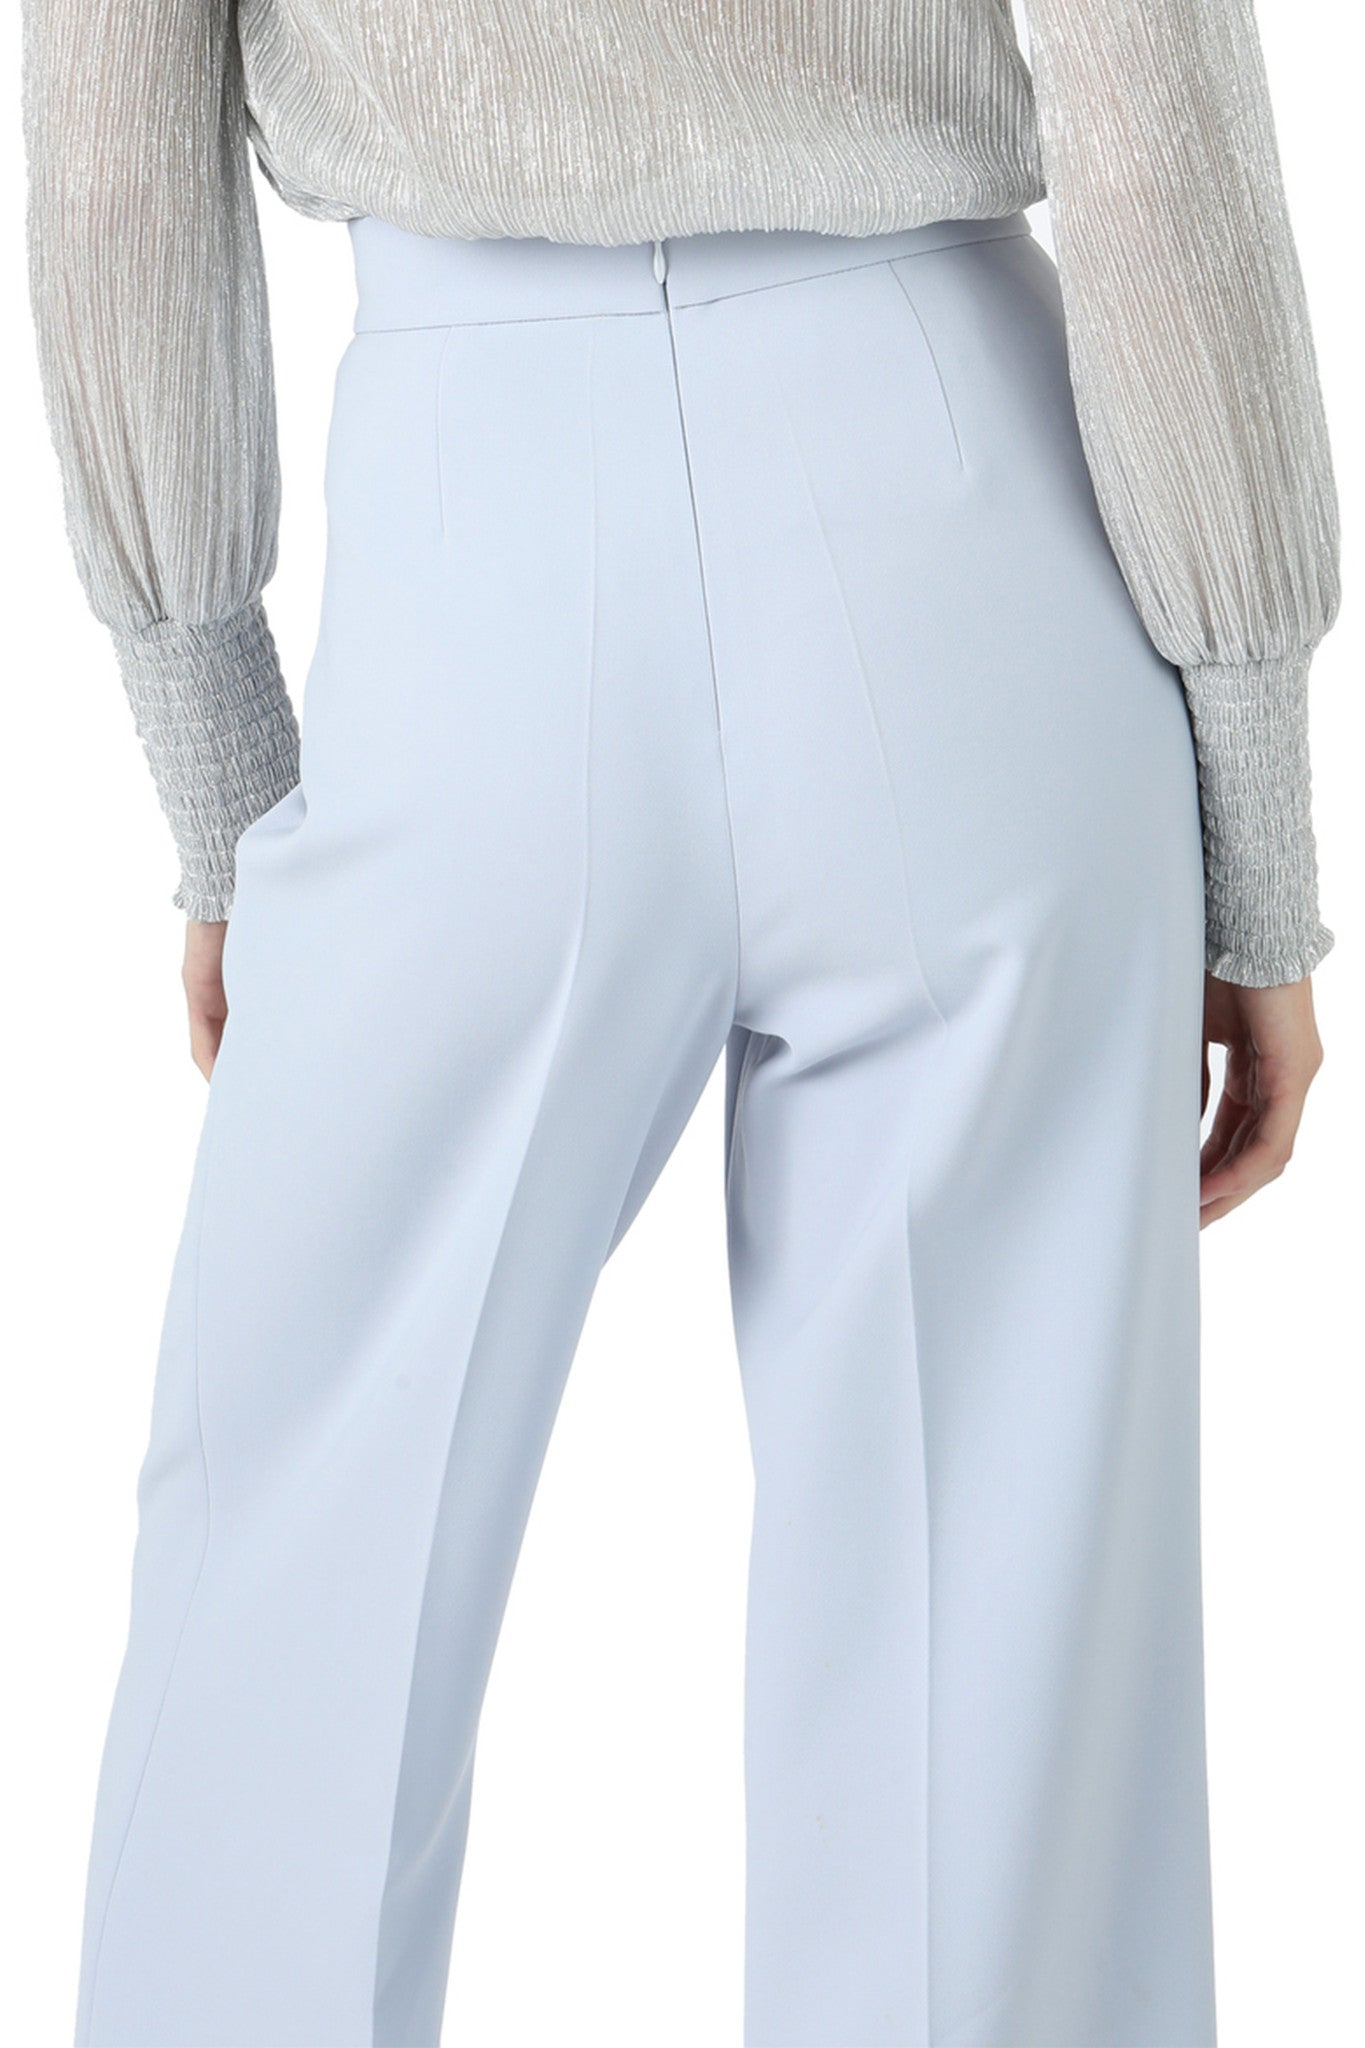 Jay Godfrey Ice Blue Lace-Up Wide Leg Pants - Back View